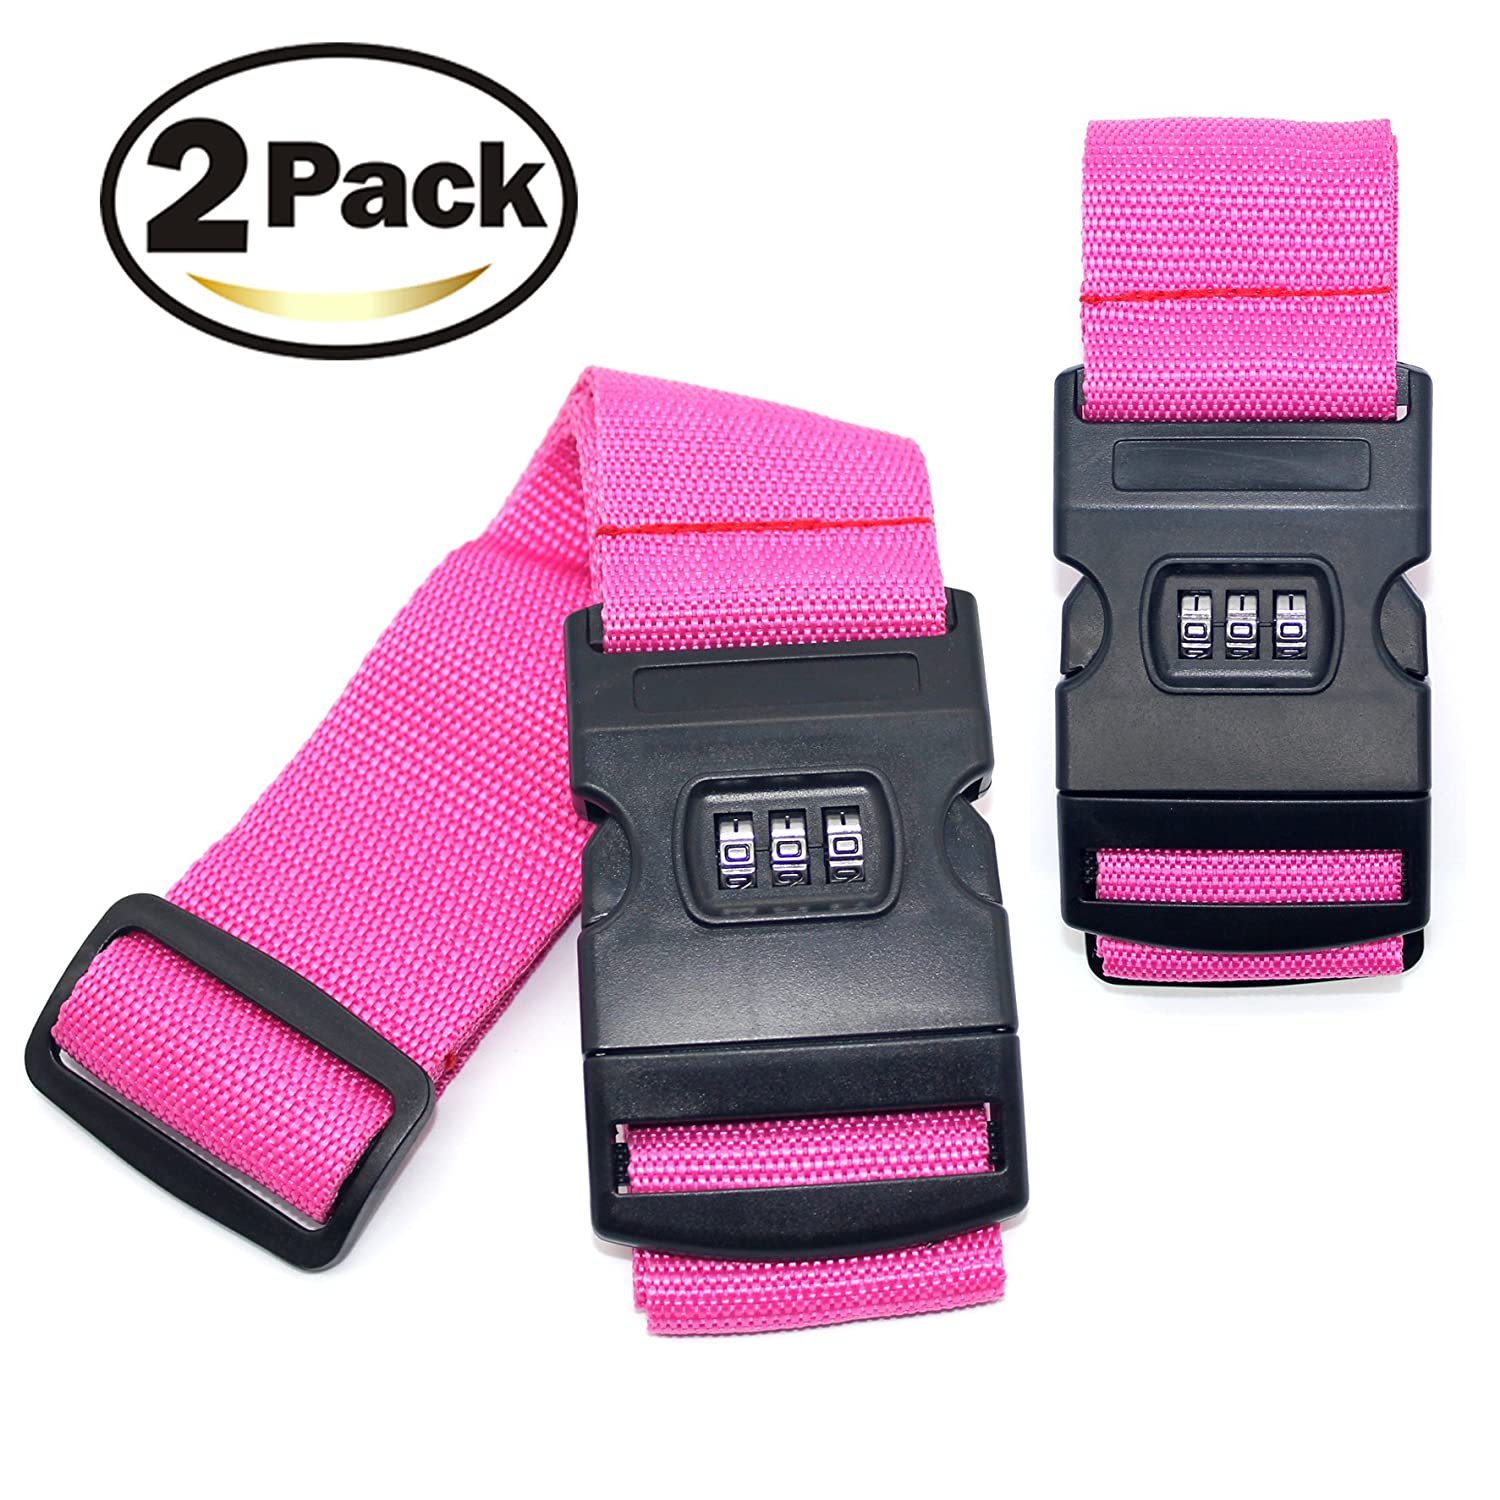 2E·You Luggage Straps, Suitcase Belts Travel Bag Accessories with 3 Digit Lock 2E·You Luggage Straps BYAWB160